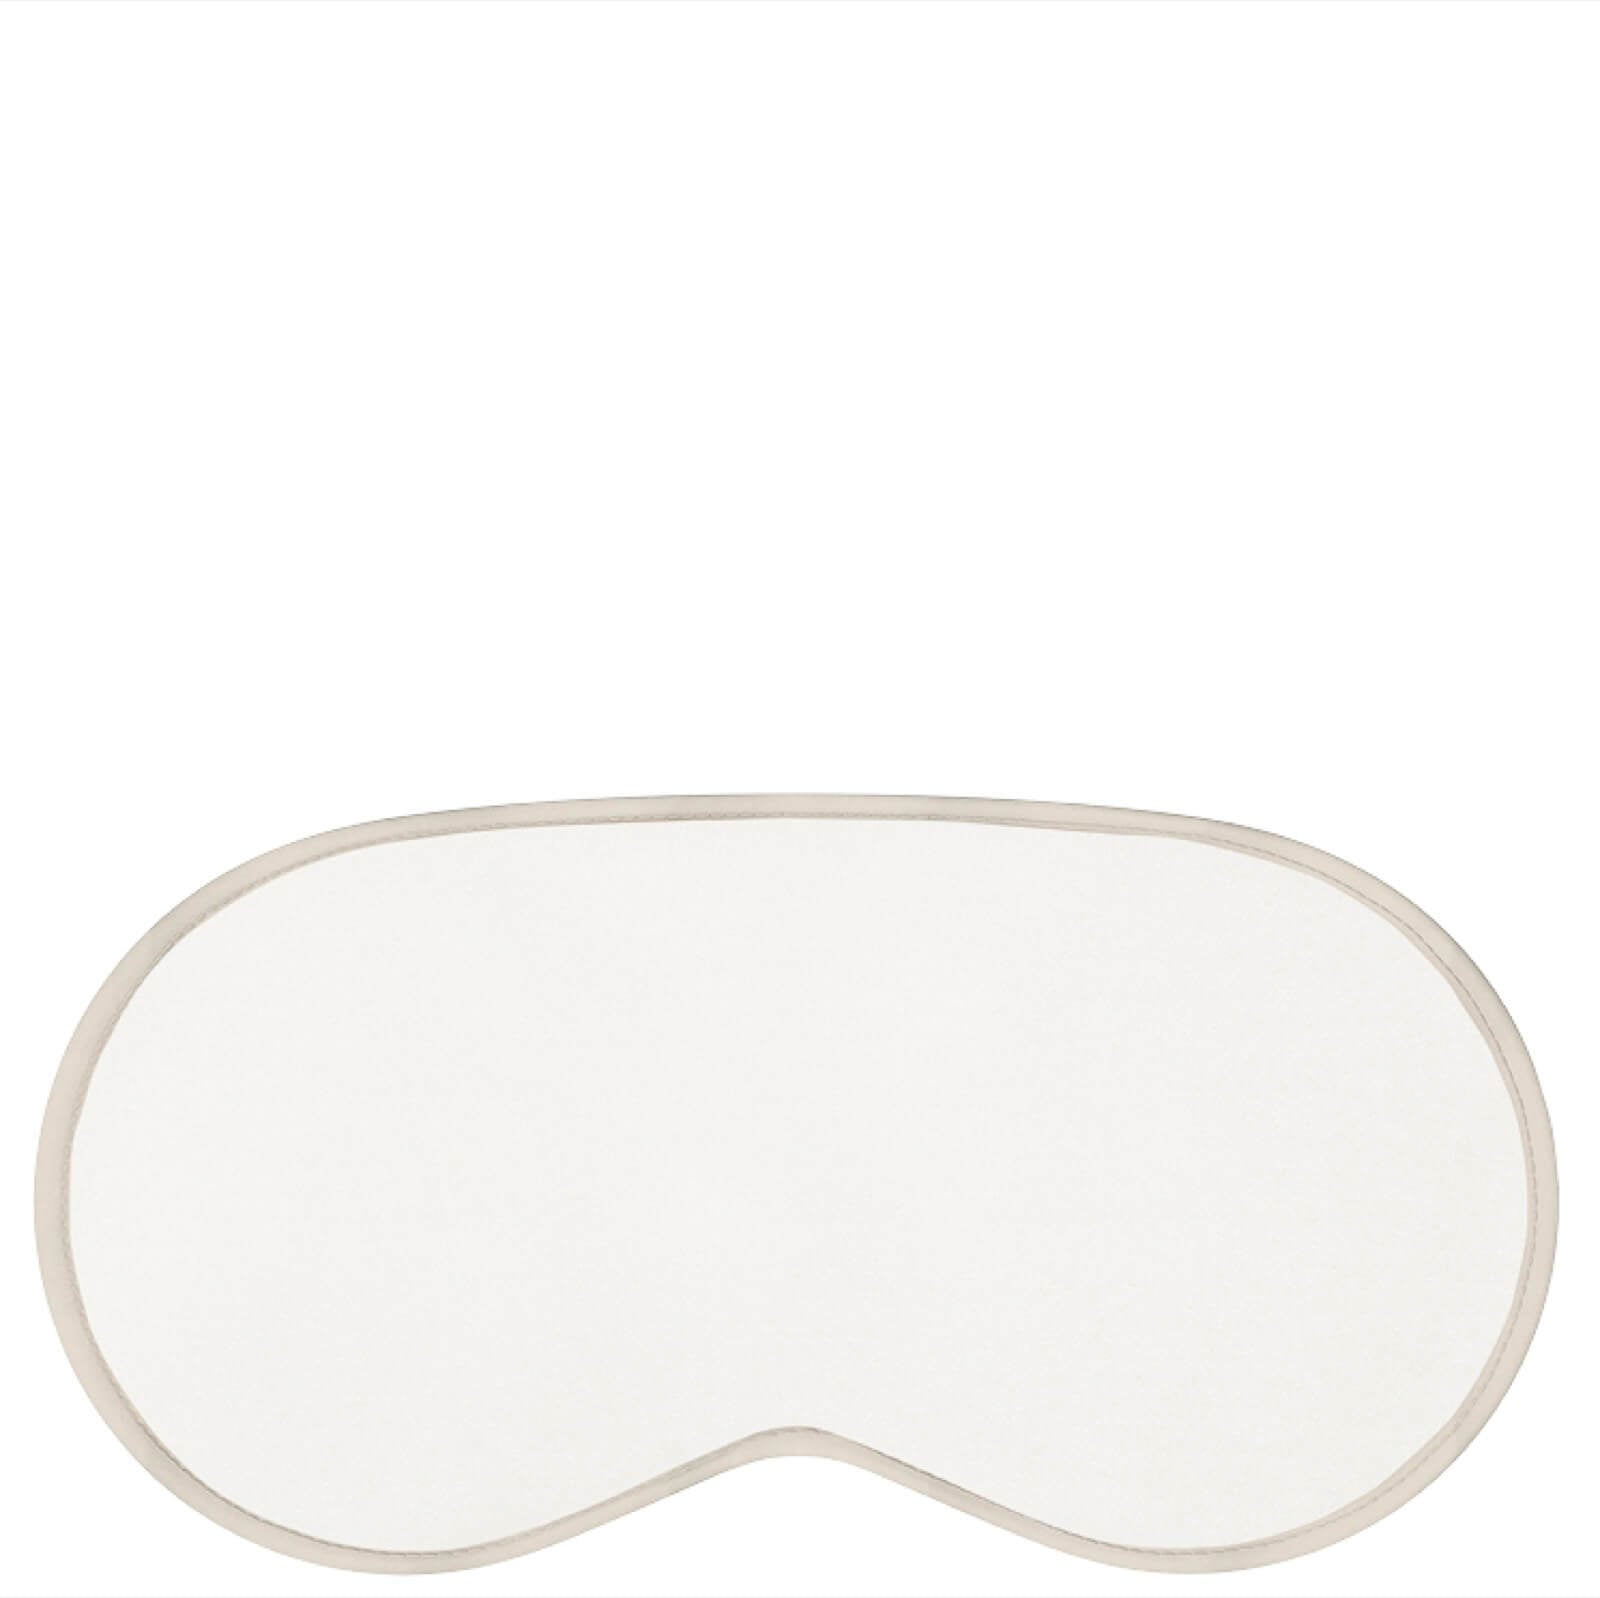 Iluminage Skin Rejuvenating Eye Mask with Anti-Aging Copper Technology